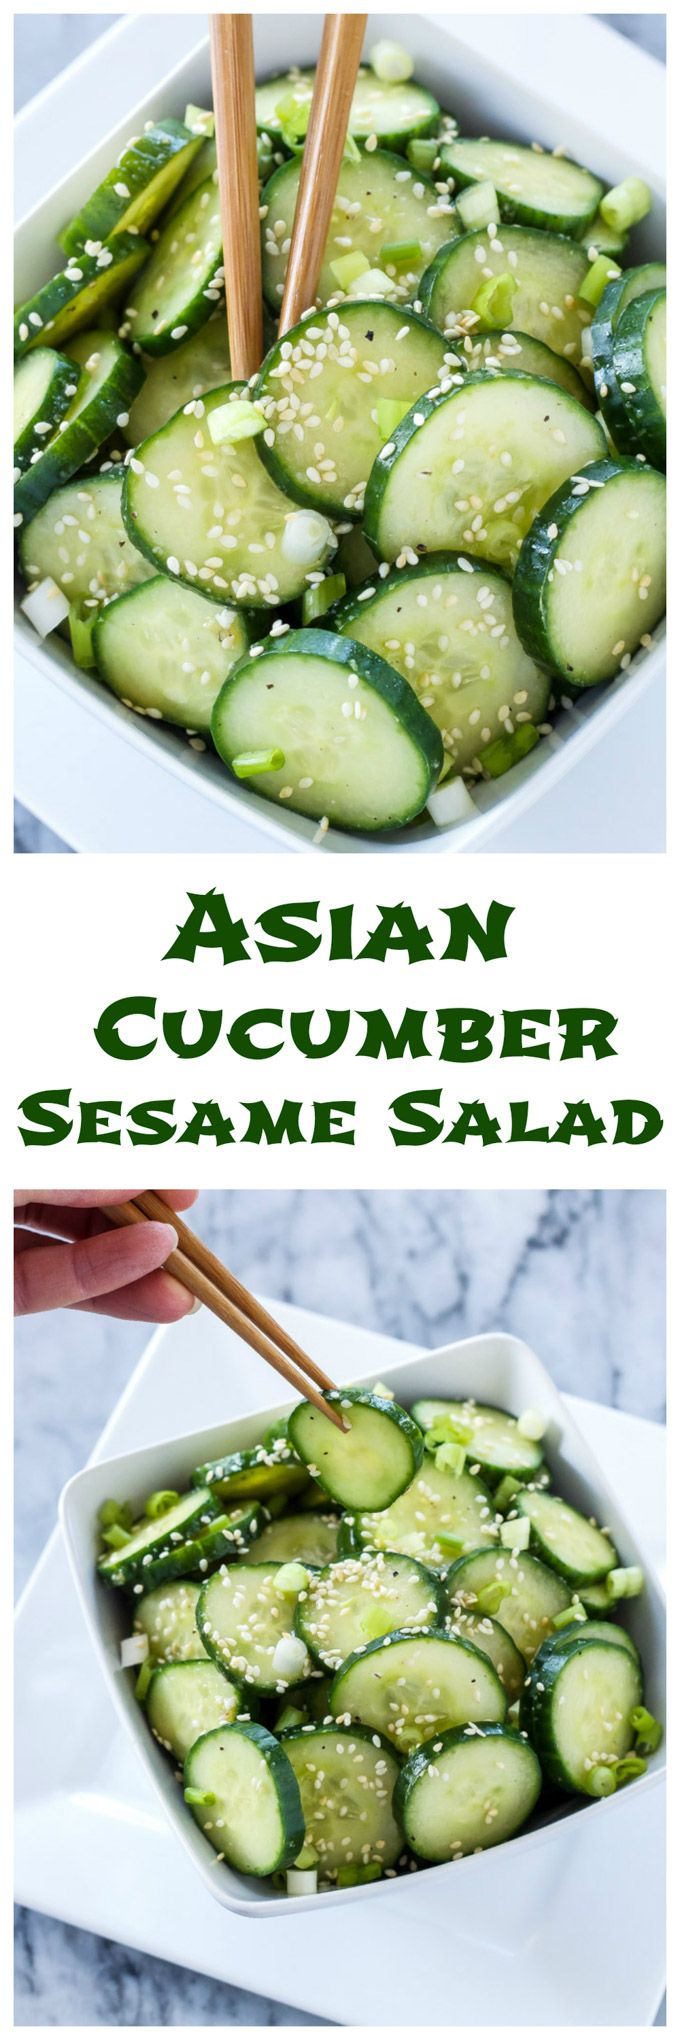 Asian Cucumber Sesame Salad - full of delicious Asian flavors!